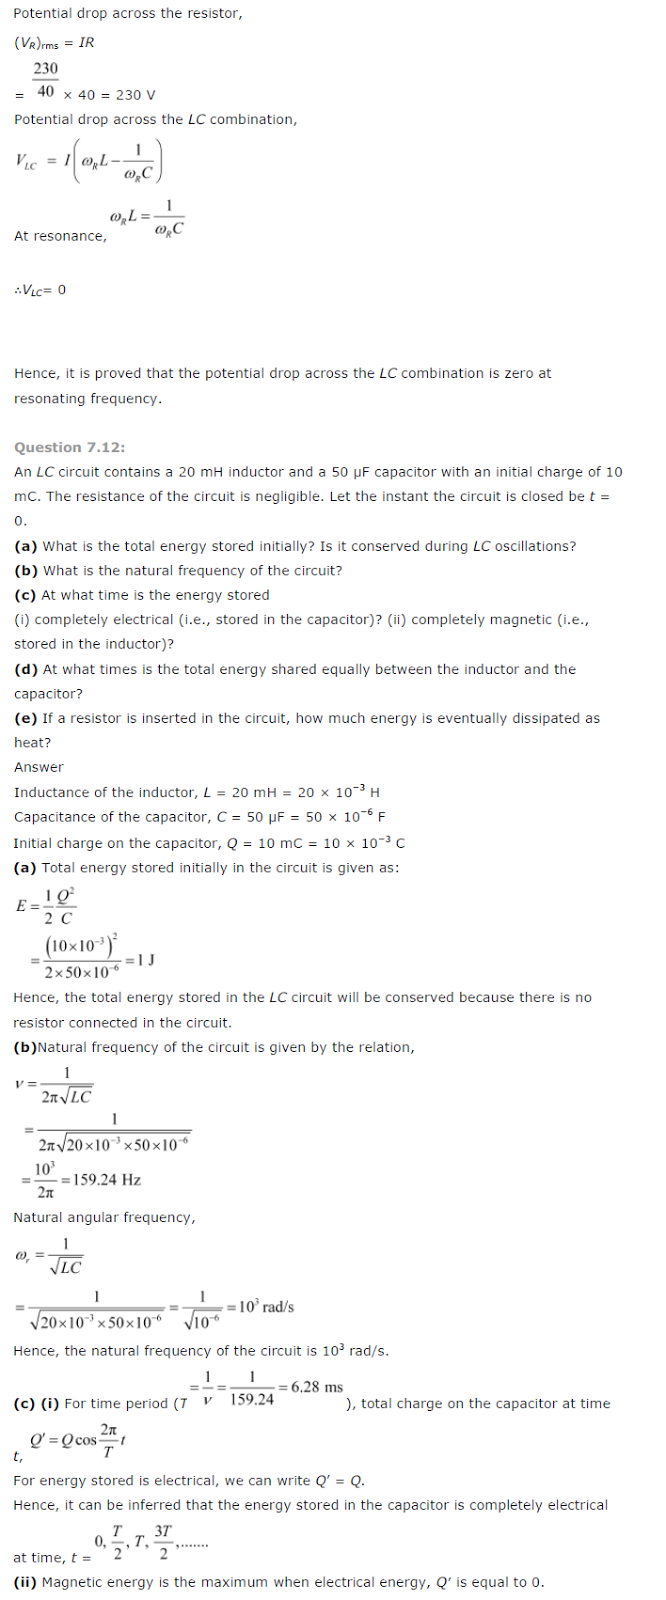 ncert solutions for class 9,10,11 and 12 : ncert solution